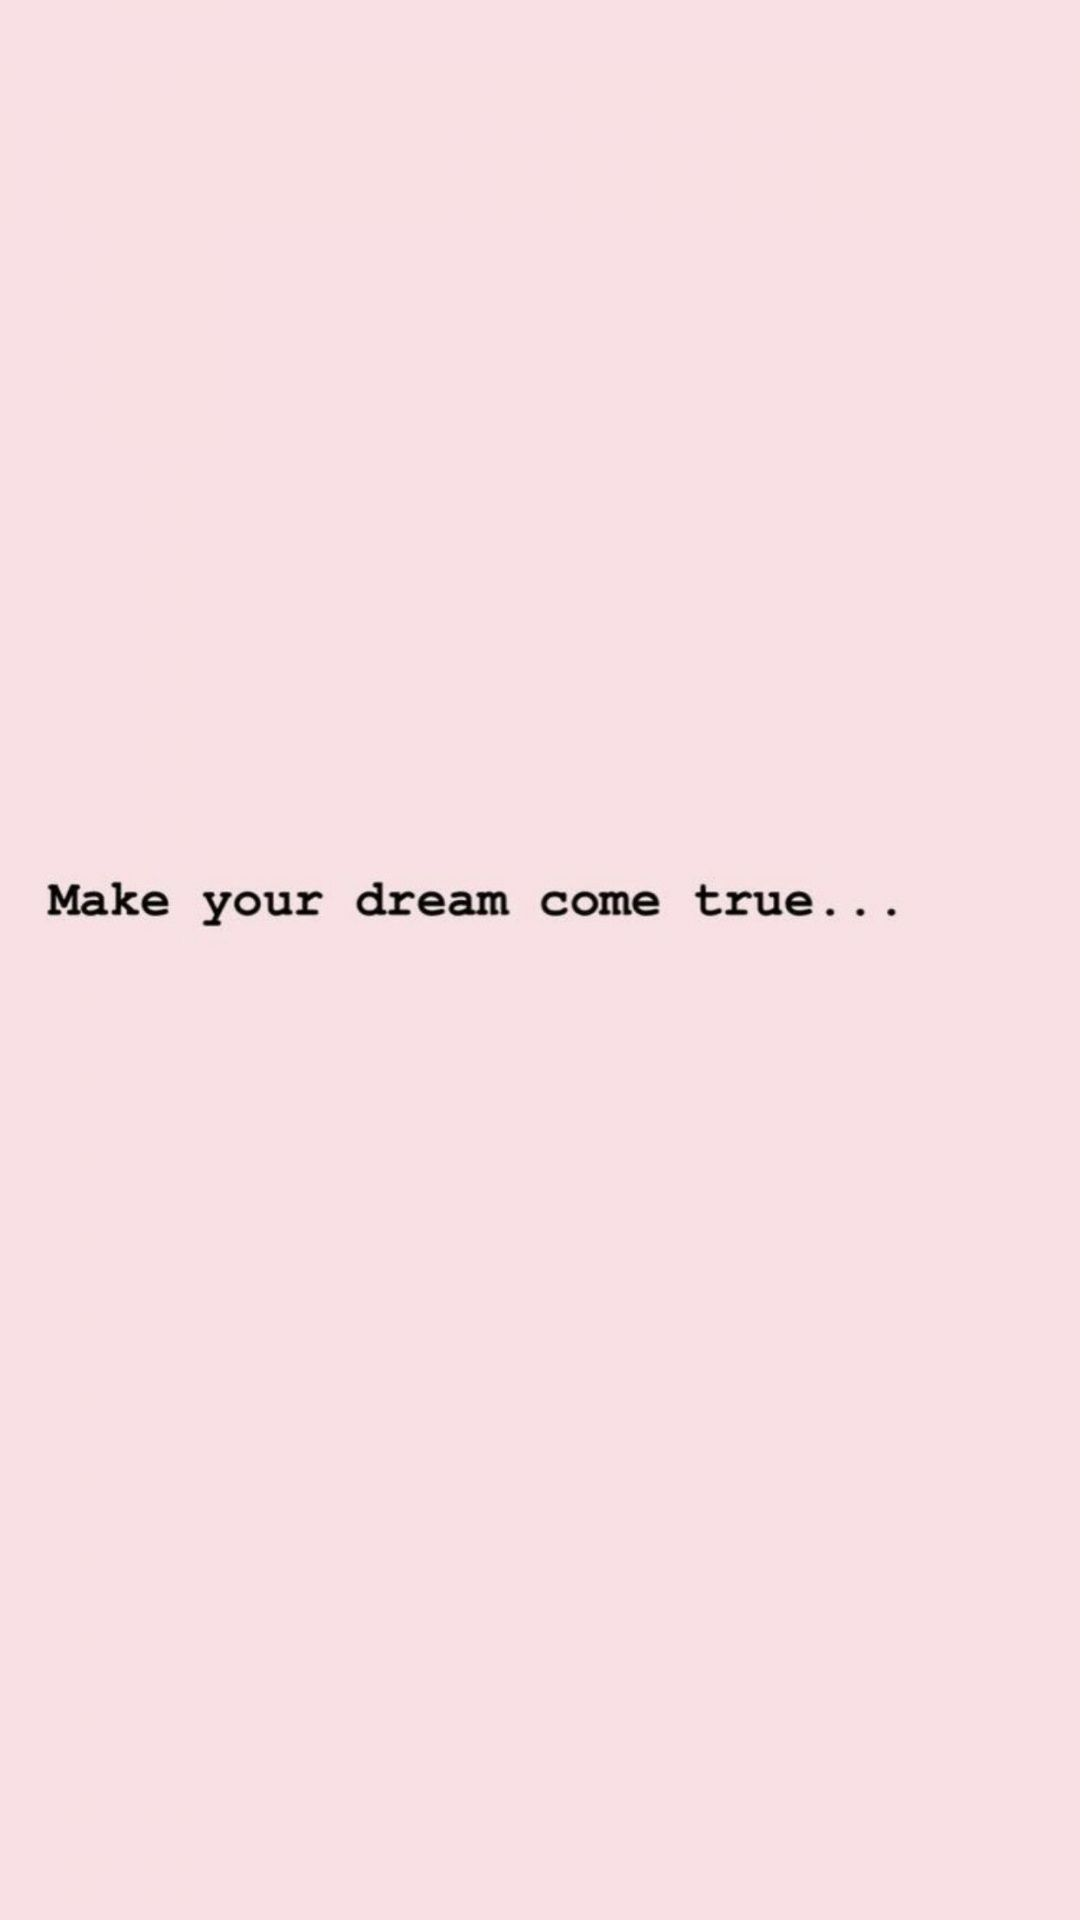 aesthetic quotes tumblrandroid iphone desktop hd backgrounds wallpapers 1080p 4k 8akgg